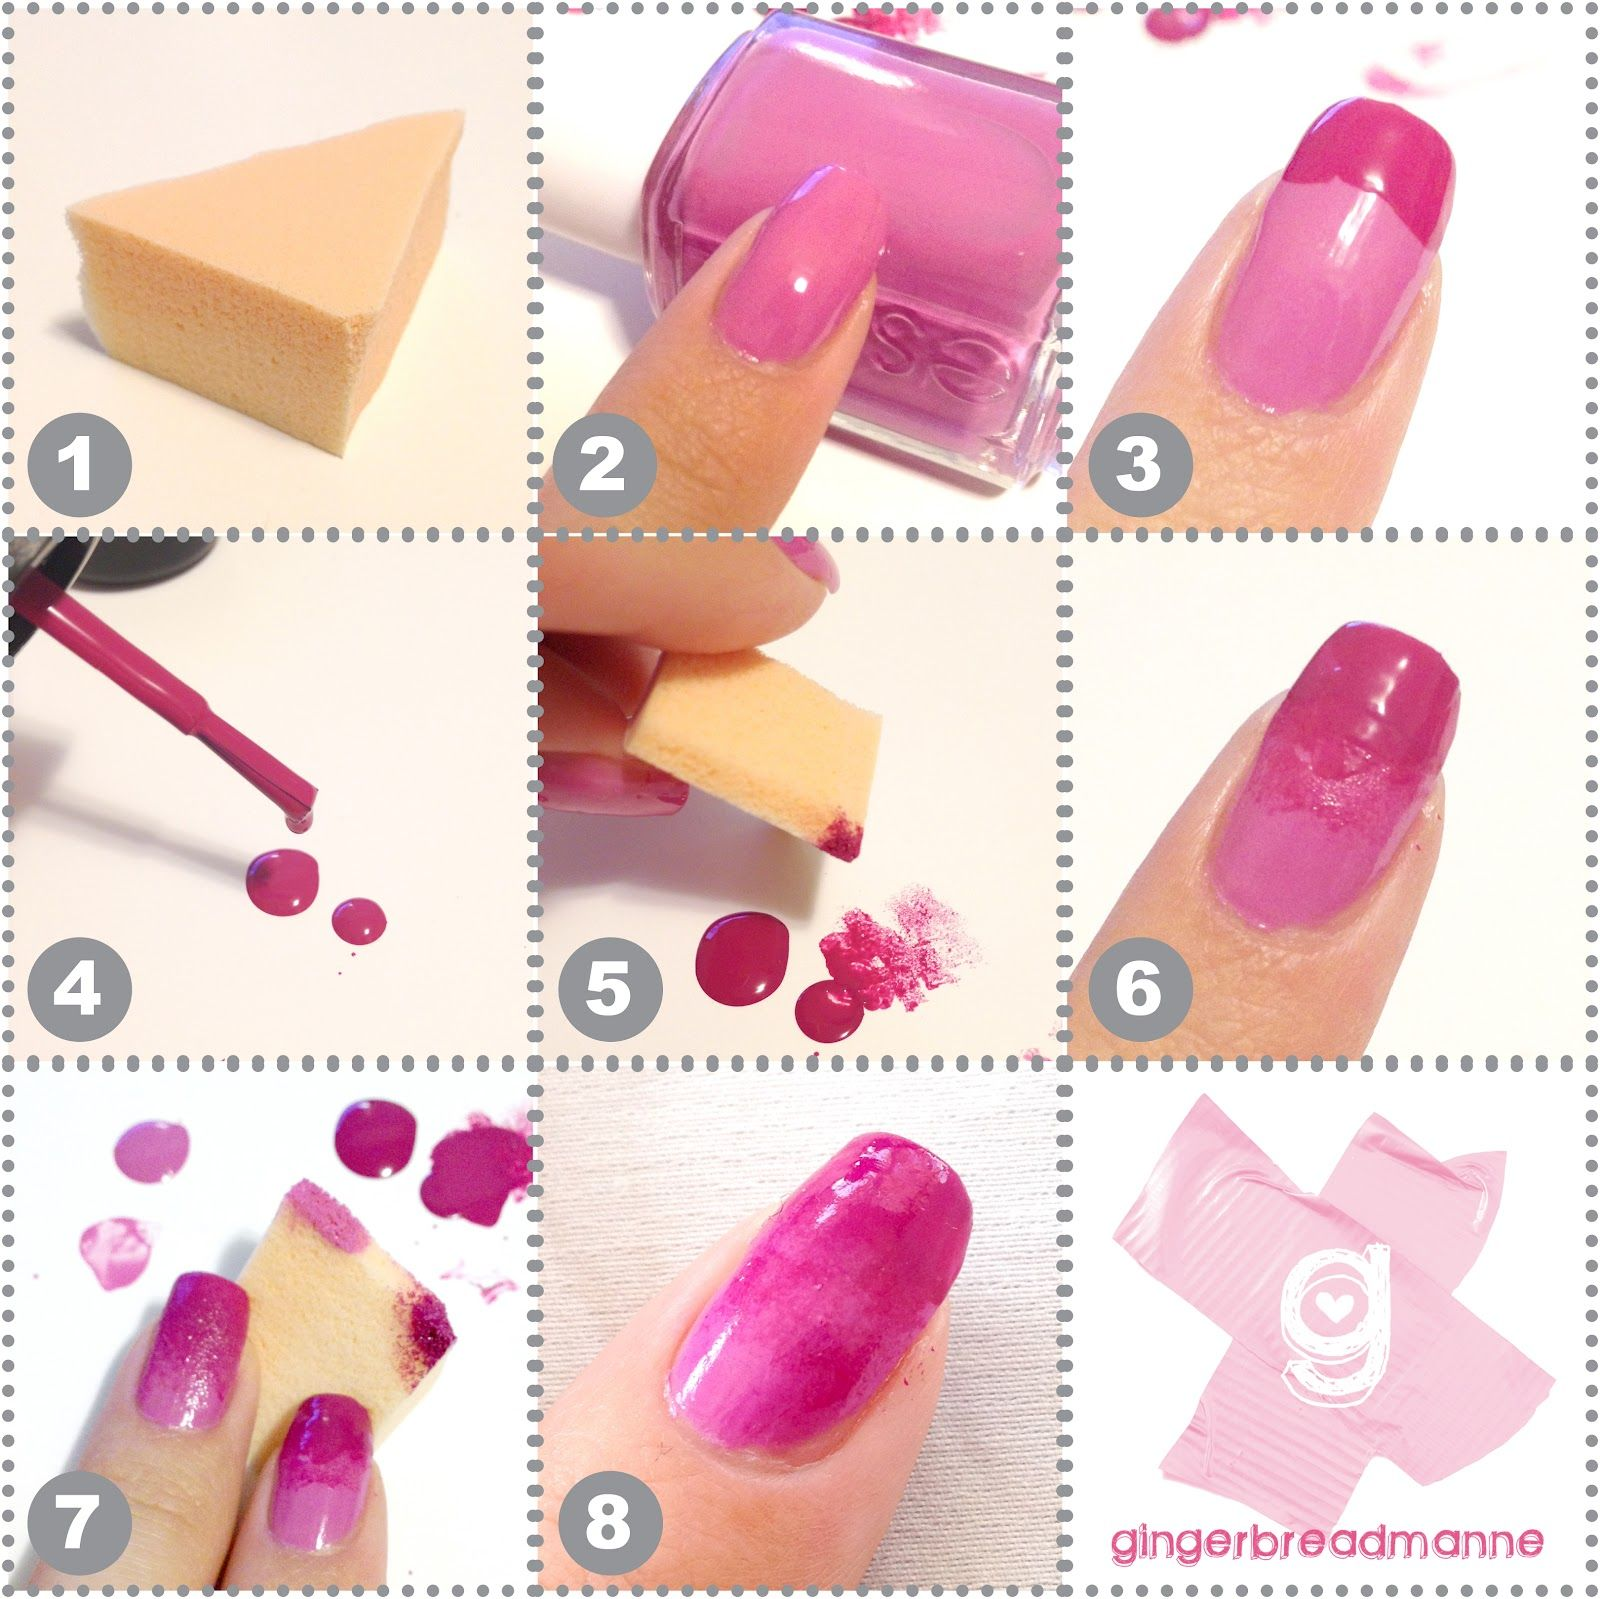 Generous 3d Gel Nail Art Designs Thick Red Nail Polish On Carpet Flat The Best Treatment For Nail Fungus Inglot Nail Polish Singapore Old Nail Polish Supply RedLight Nail Polish Colors 1000  Images About Gelish On Pinterest | Nail Harmony, Blue Colors ..